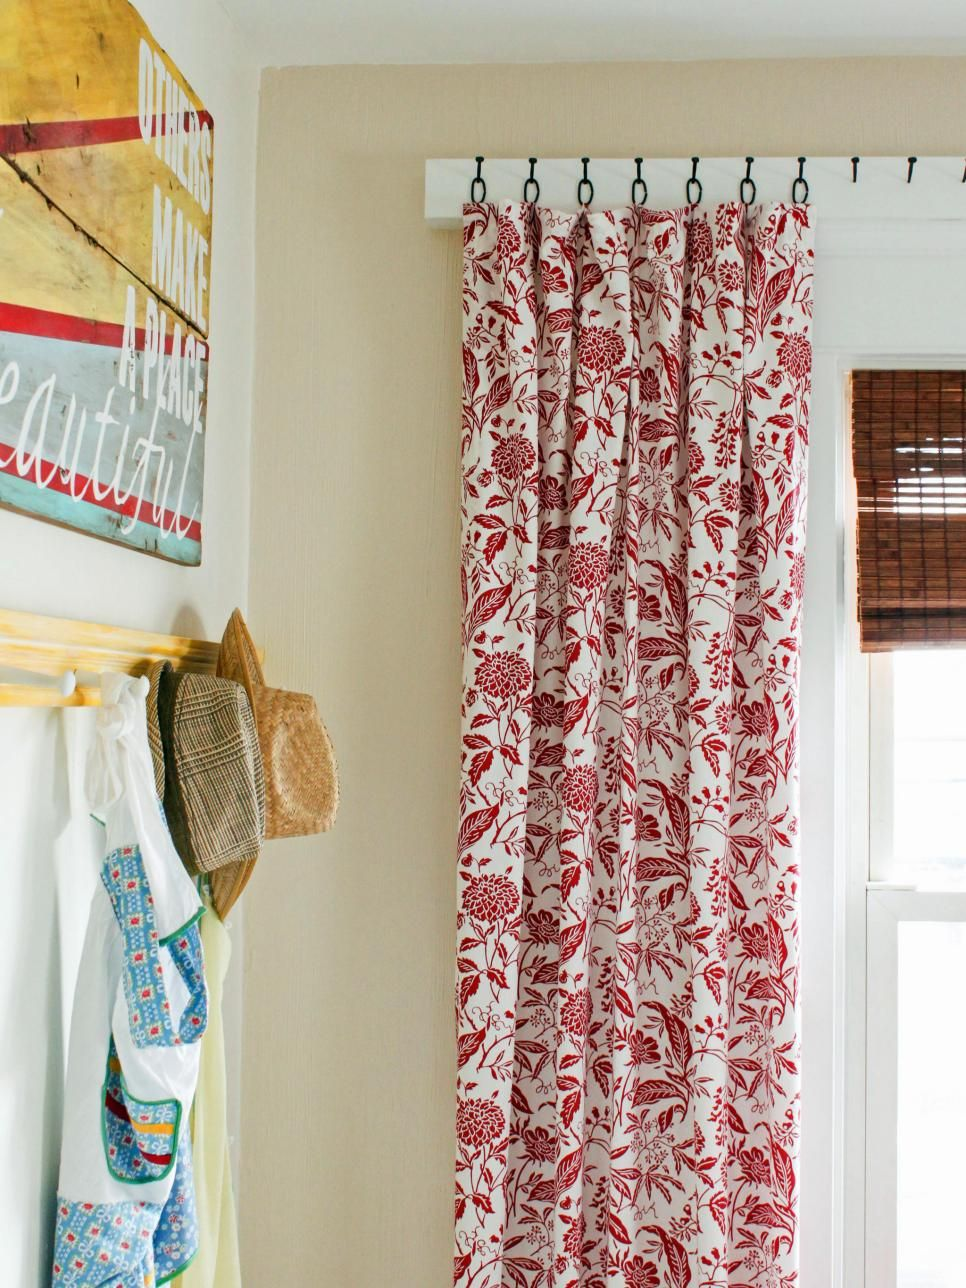 Diy shower curtain ideas 10 easy to make diy shower curtain ideas - No One Would Ever Believe That These Curtains Cost Around 18 Including Hardware Michael